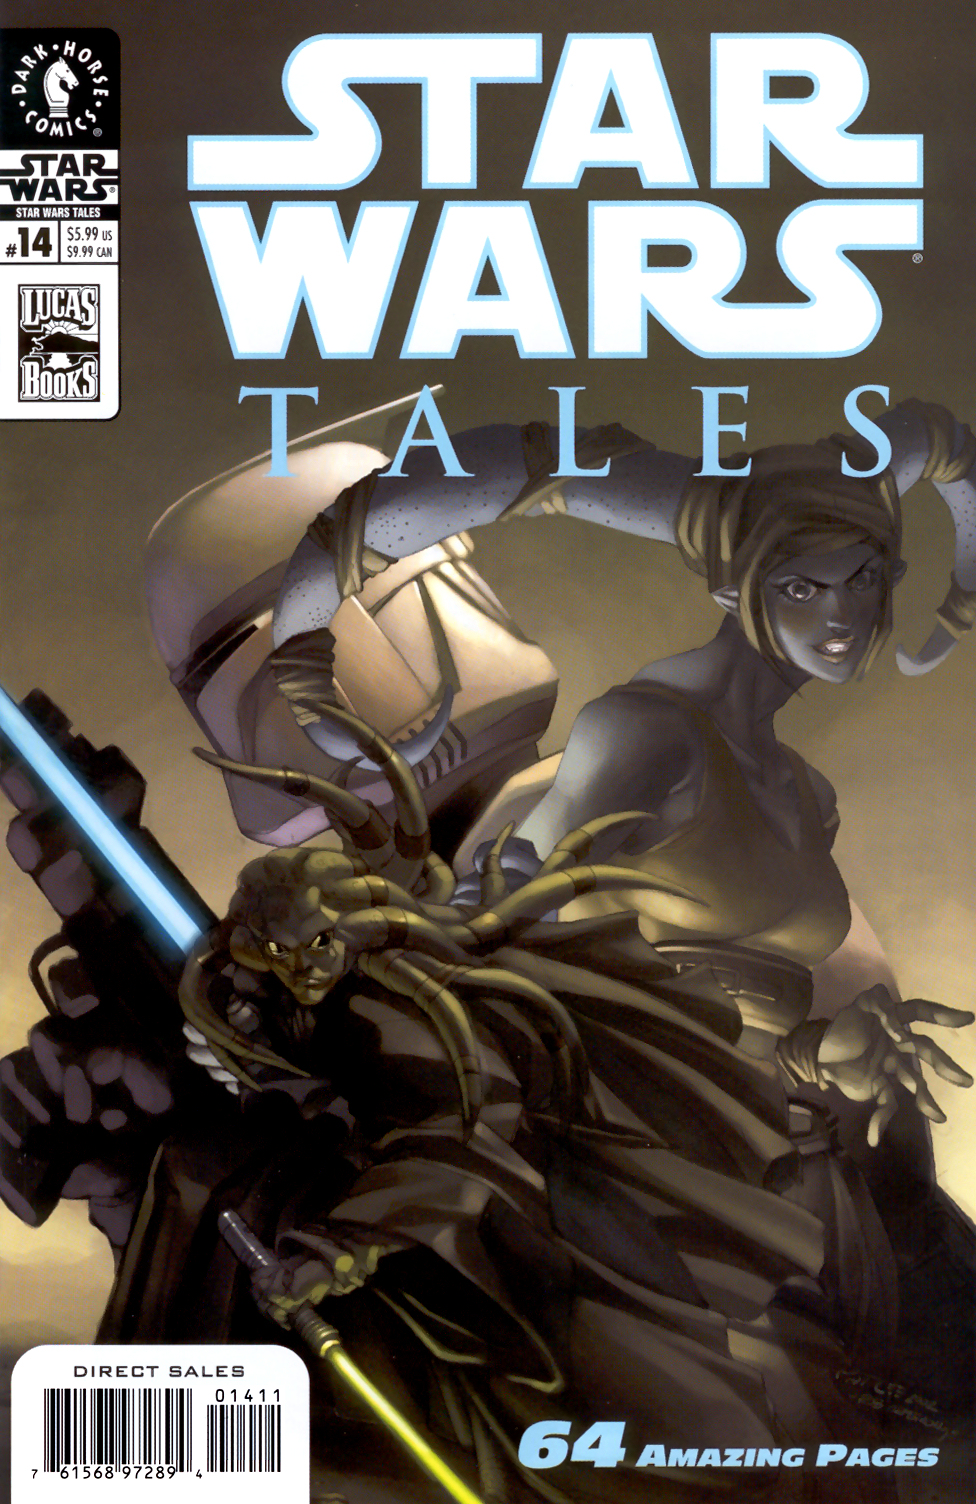 Star Wars Tales: The Emperor's Court